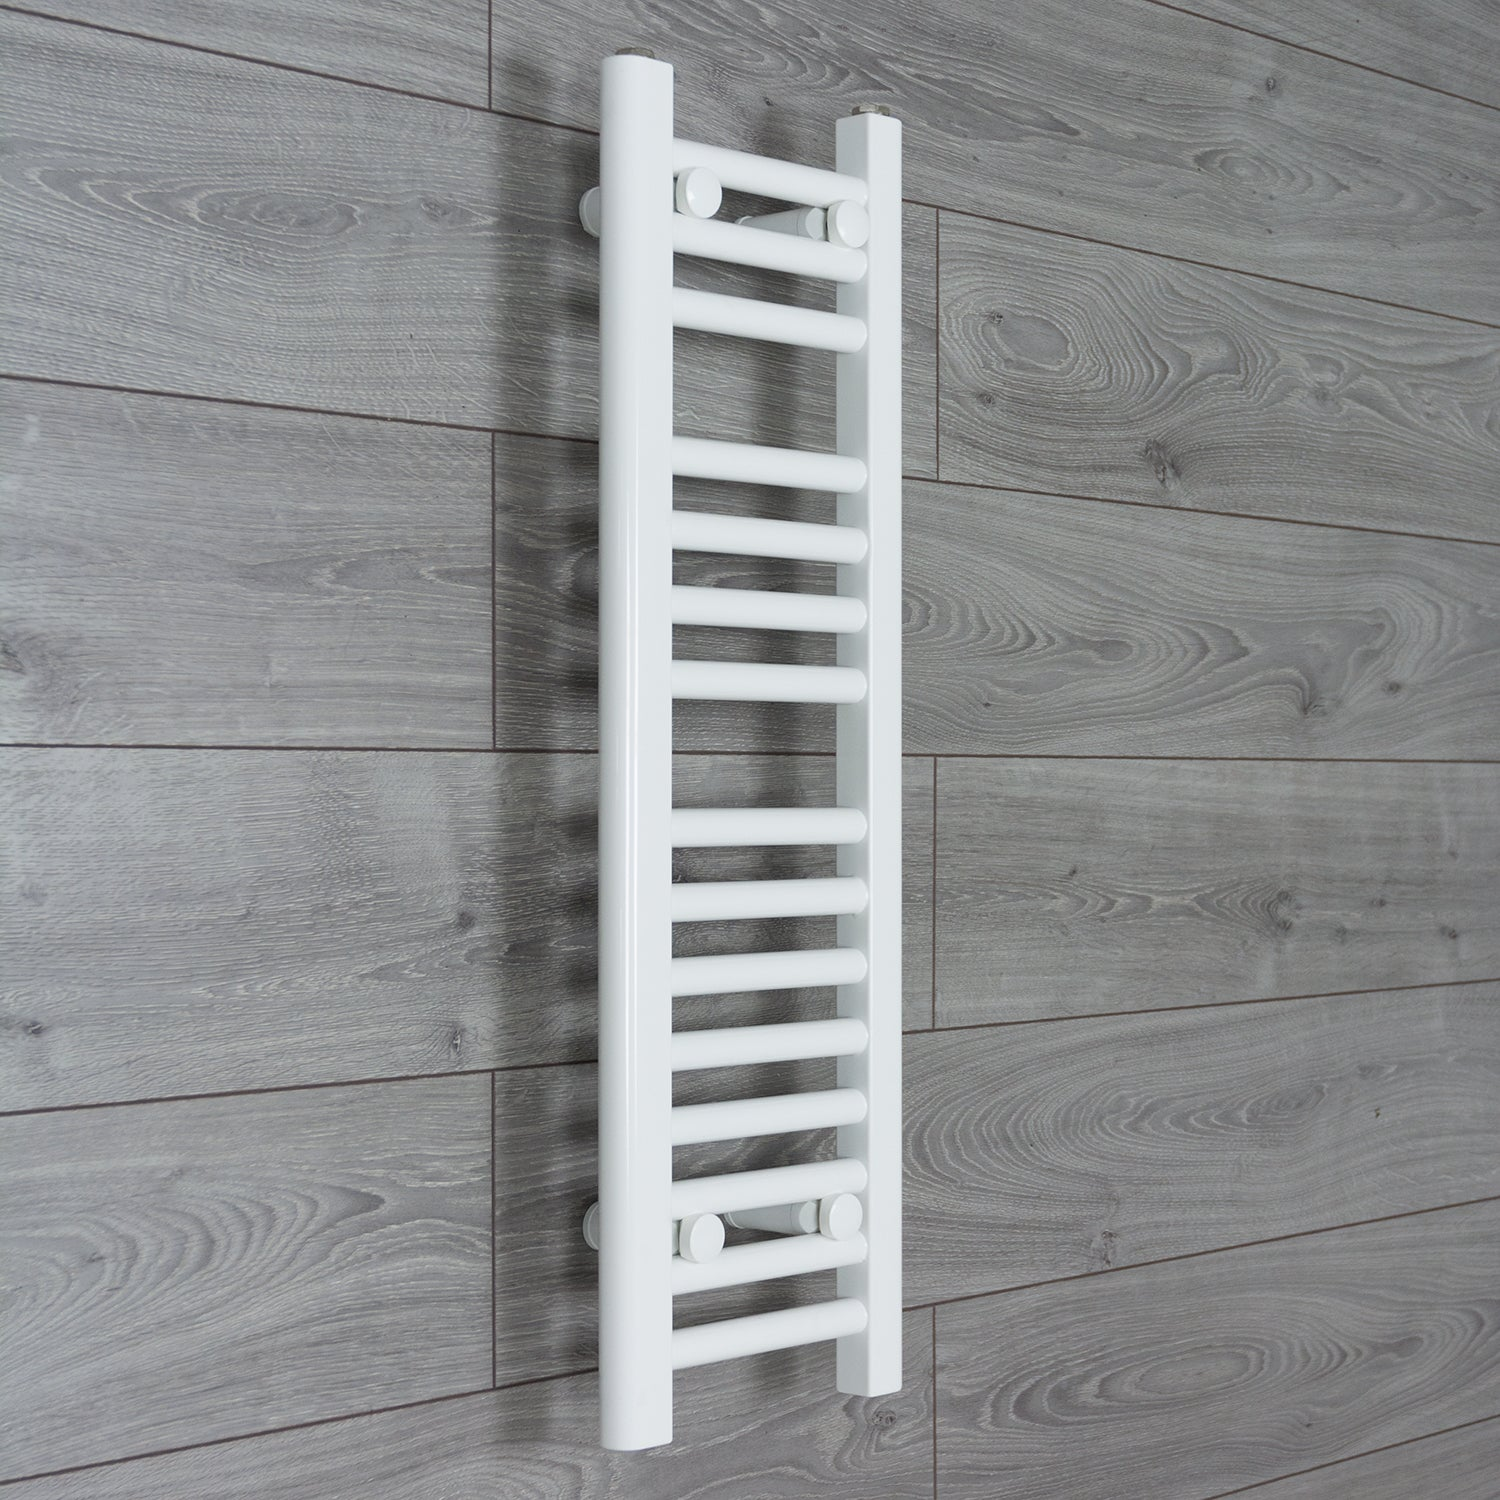 200mm Wide 800mm High Flat WHITE Pre-Filled Electric Heated Towel Rail Radiator HTR